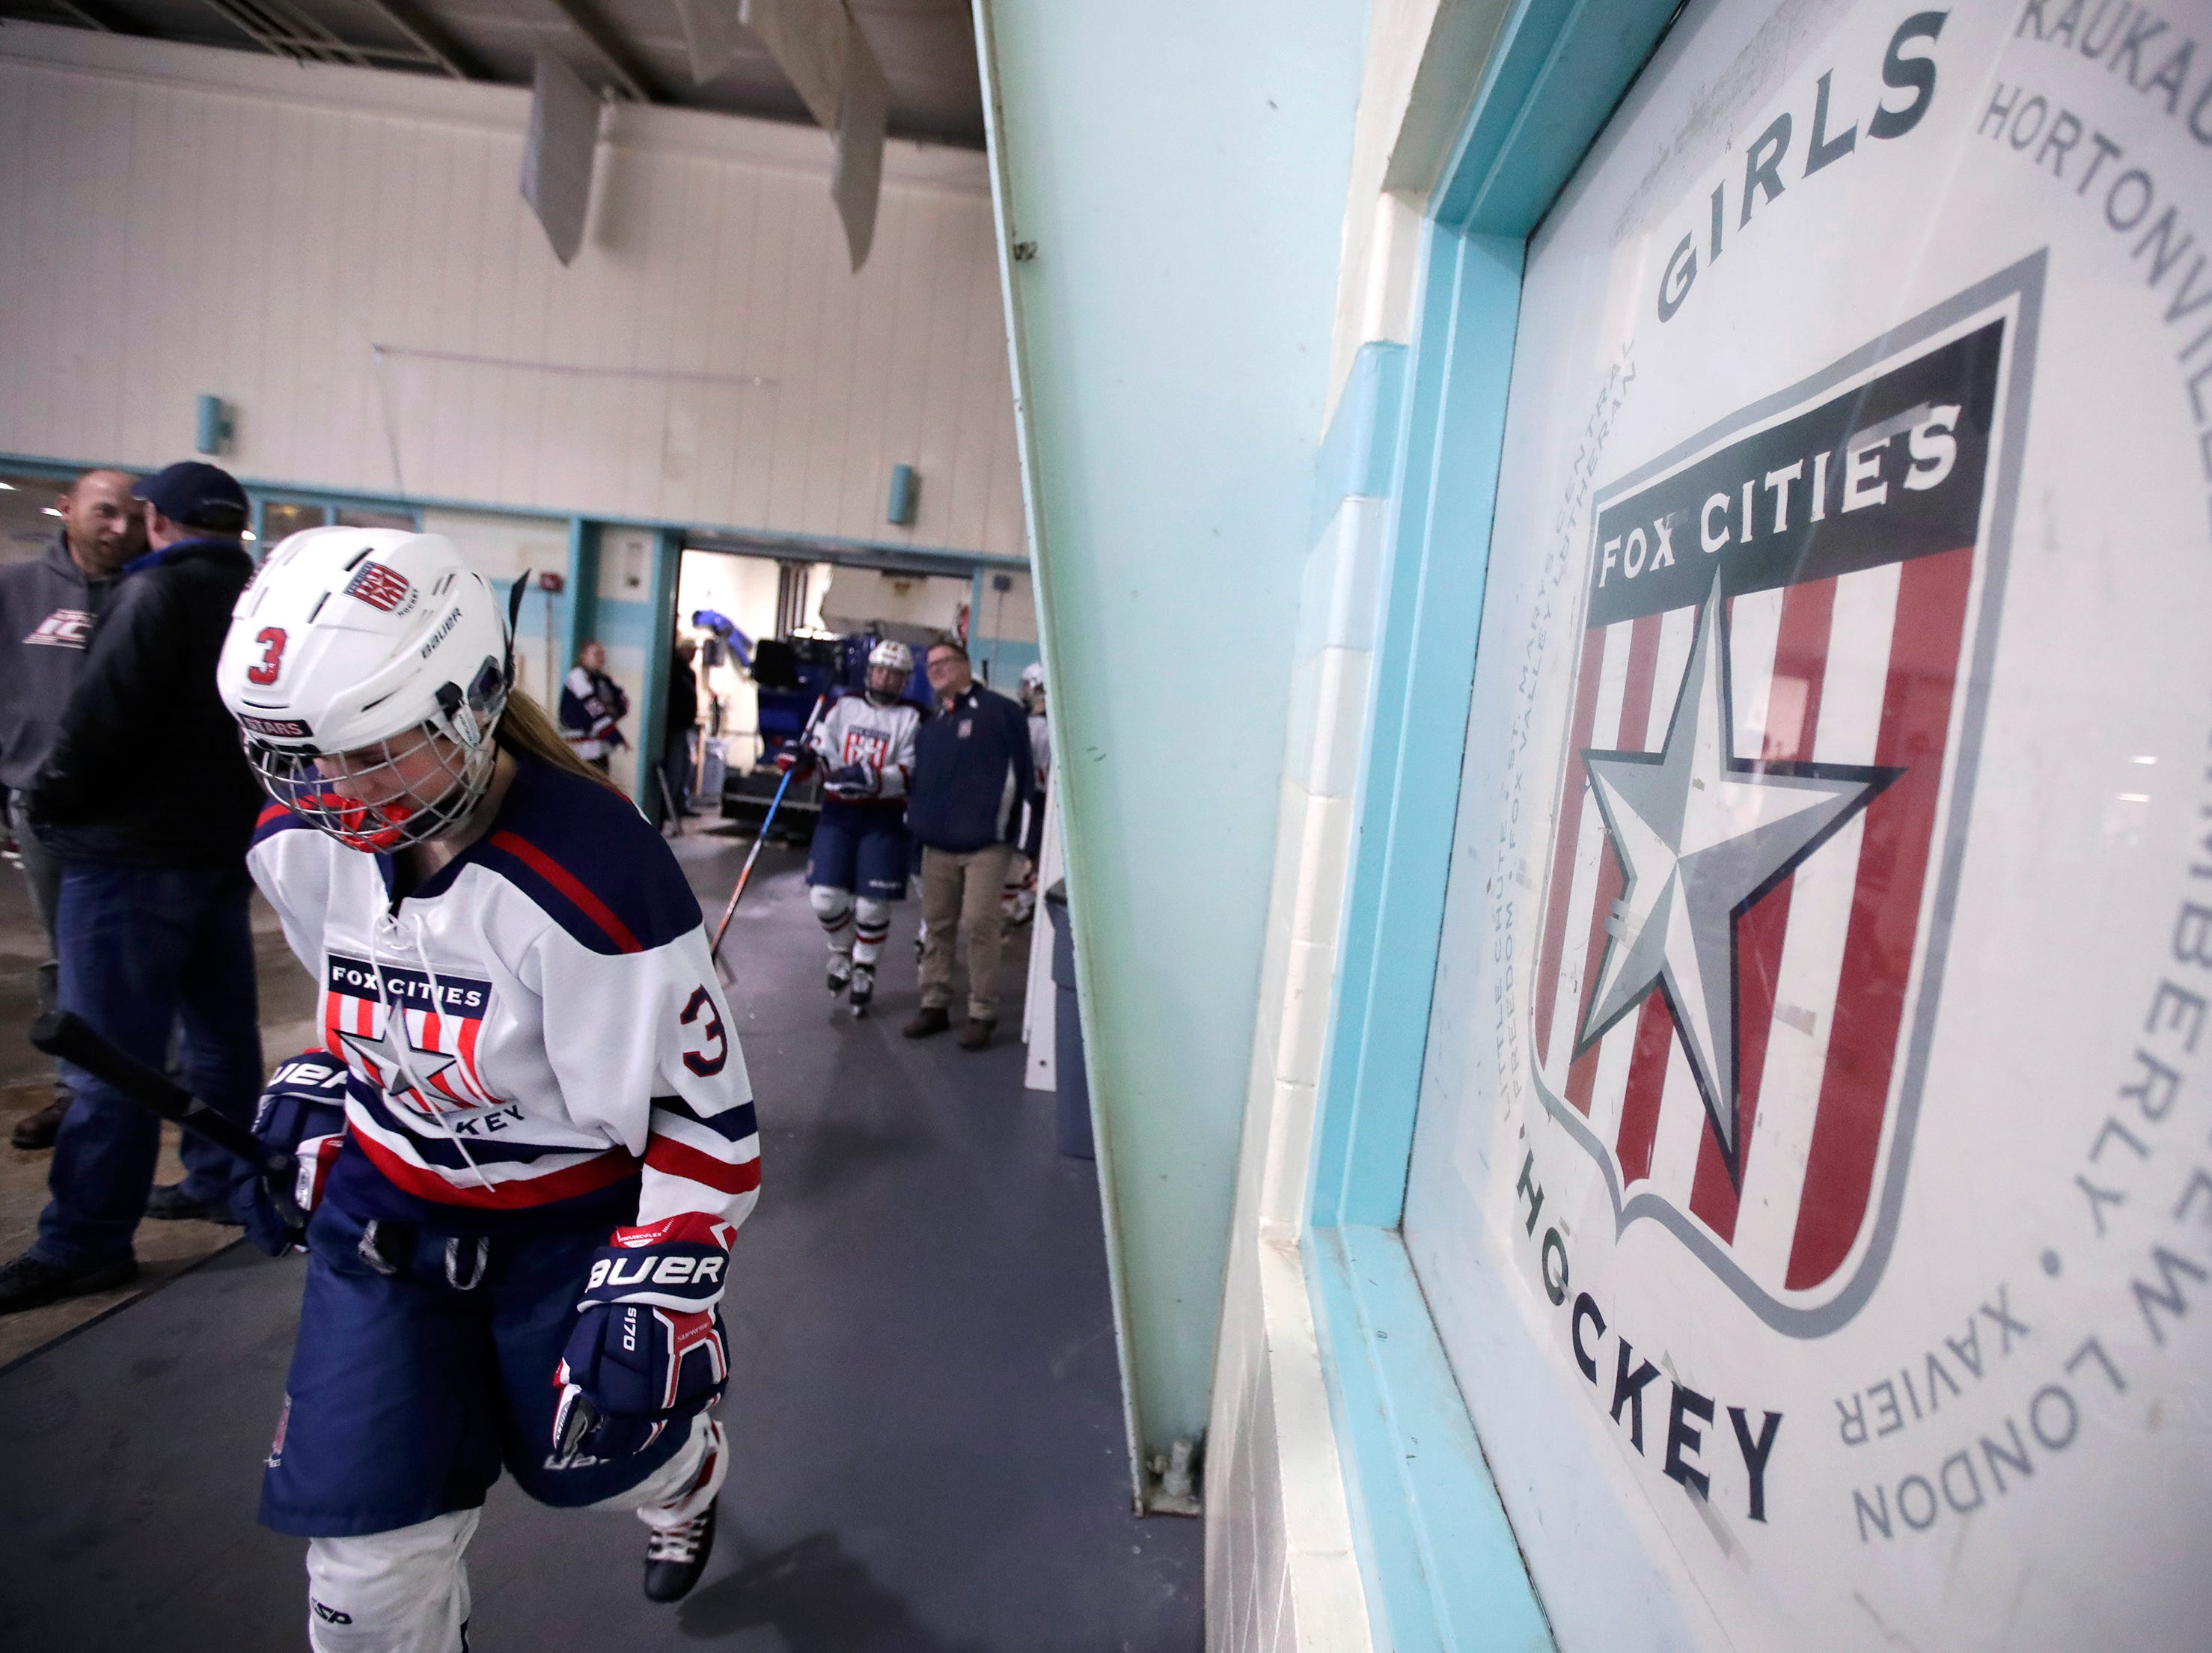 Fox Cities Stars' Shelby Hewitt walks to the ice before their  sectional semifinal against University School Co-op Tuesday, Feb. 19, 2019, at the Tri-County Ice Arena in Neenah, Wis.Danny Damiani/USA TODAY NETWORK-Wisconsin